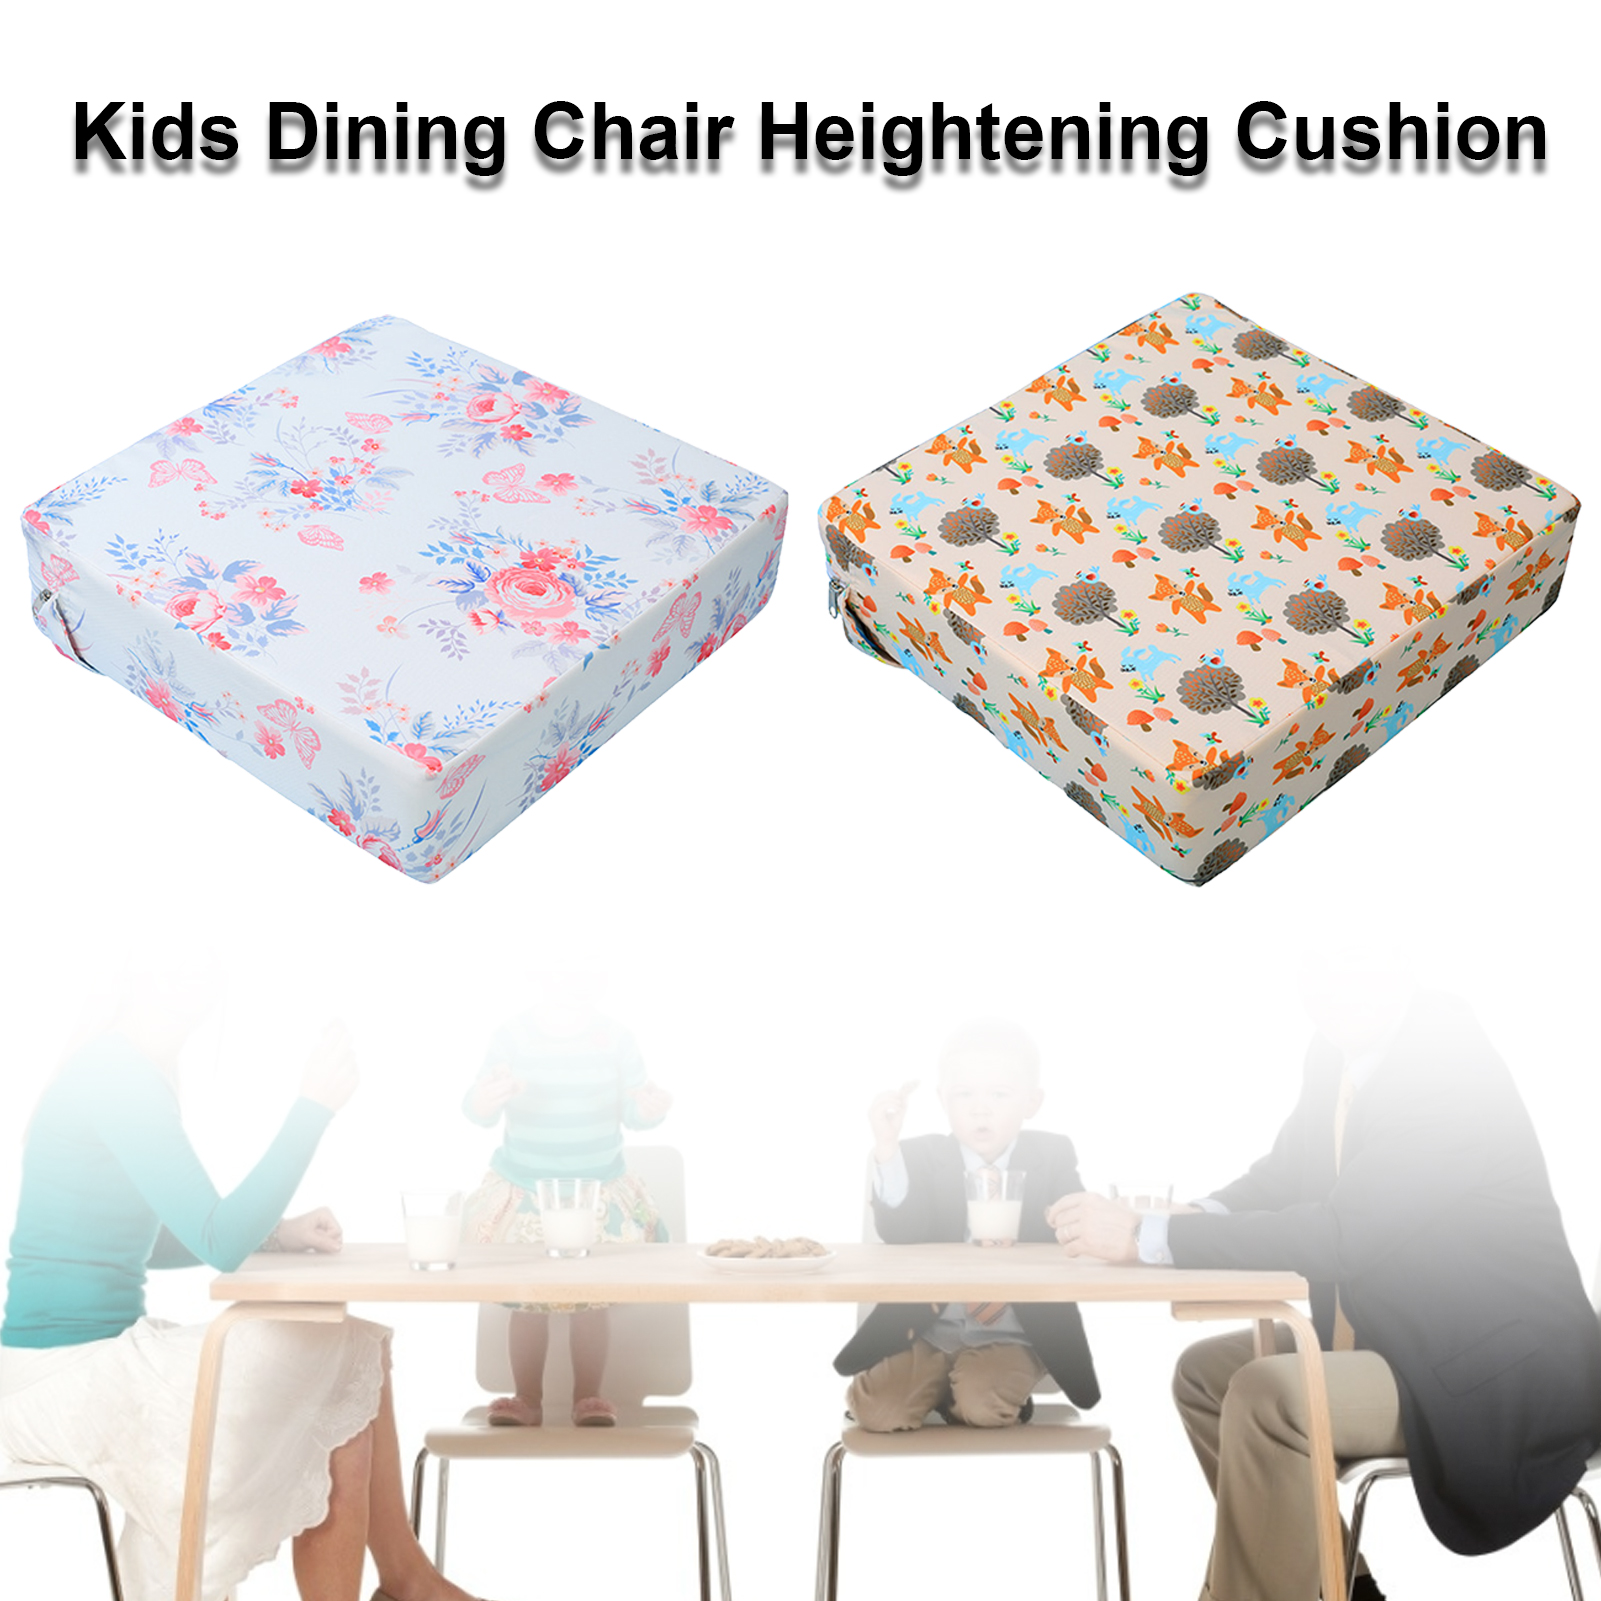 Children's Dining Chair Heightening Cushion Baby Learning Cushion Folding Washable Adjustable Student Seat Cushion